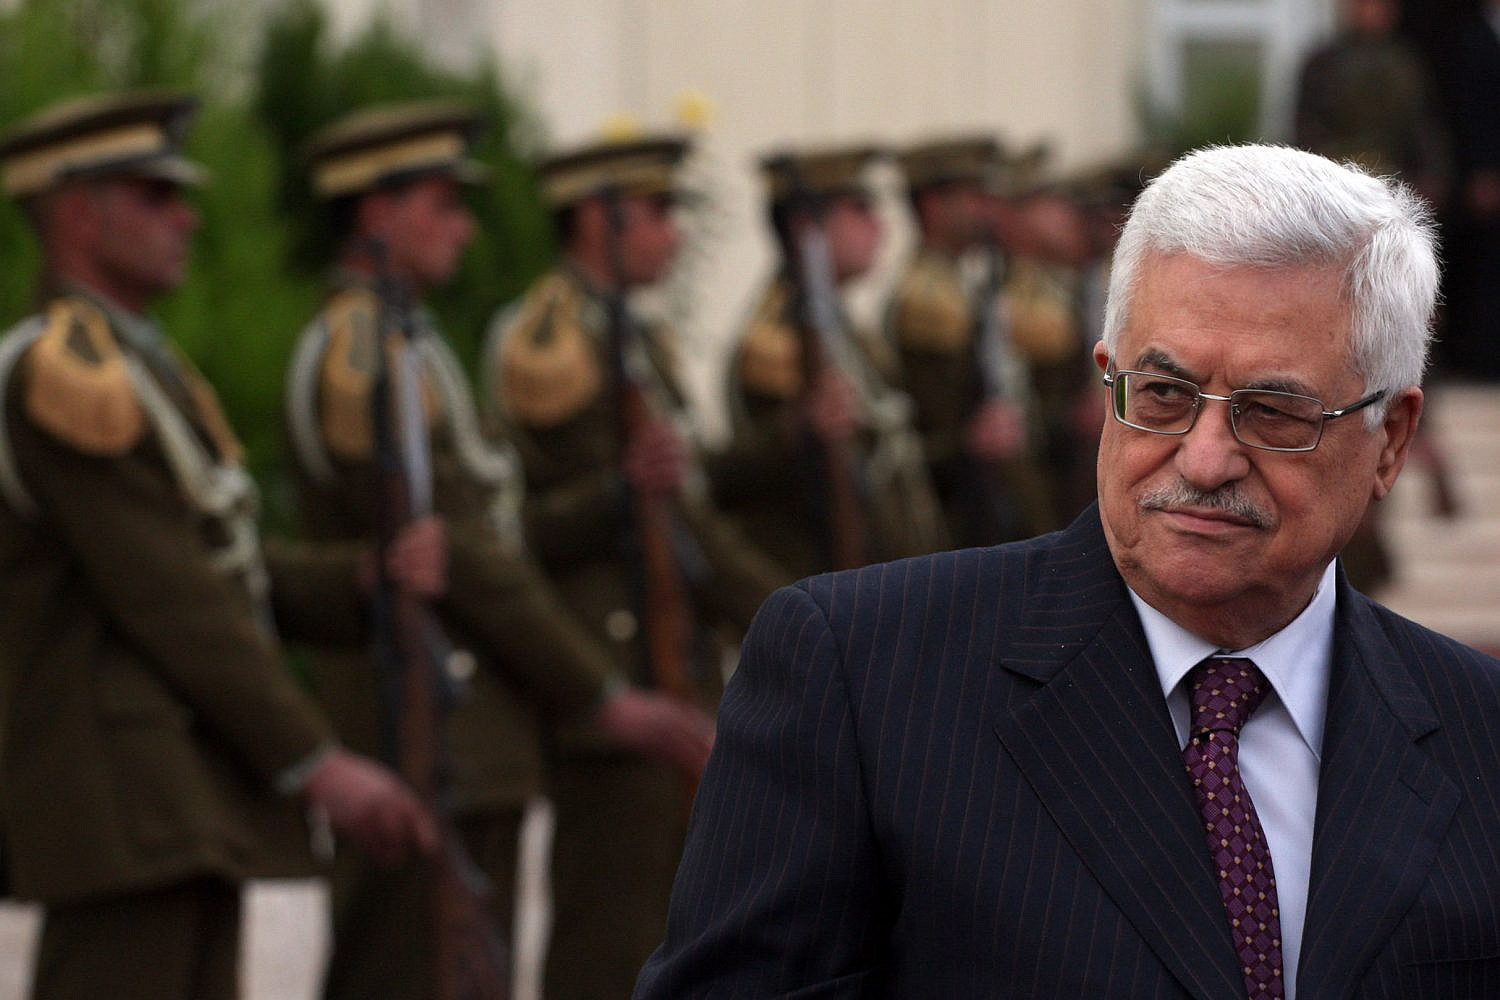 Palestinian President Mahmoud Abbas stands near the guard of honor outside his office in the West Bank city of Ramallah, Jan. 12, 2010. (Issam Rimawi/Flash90)